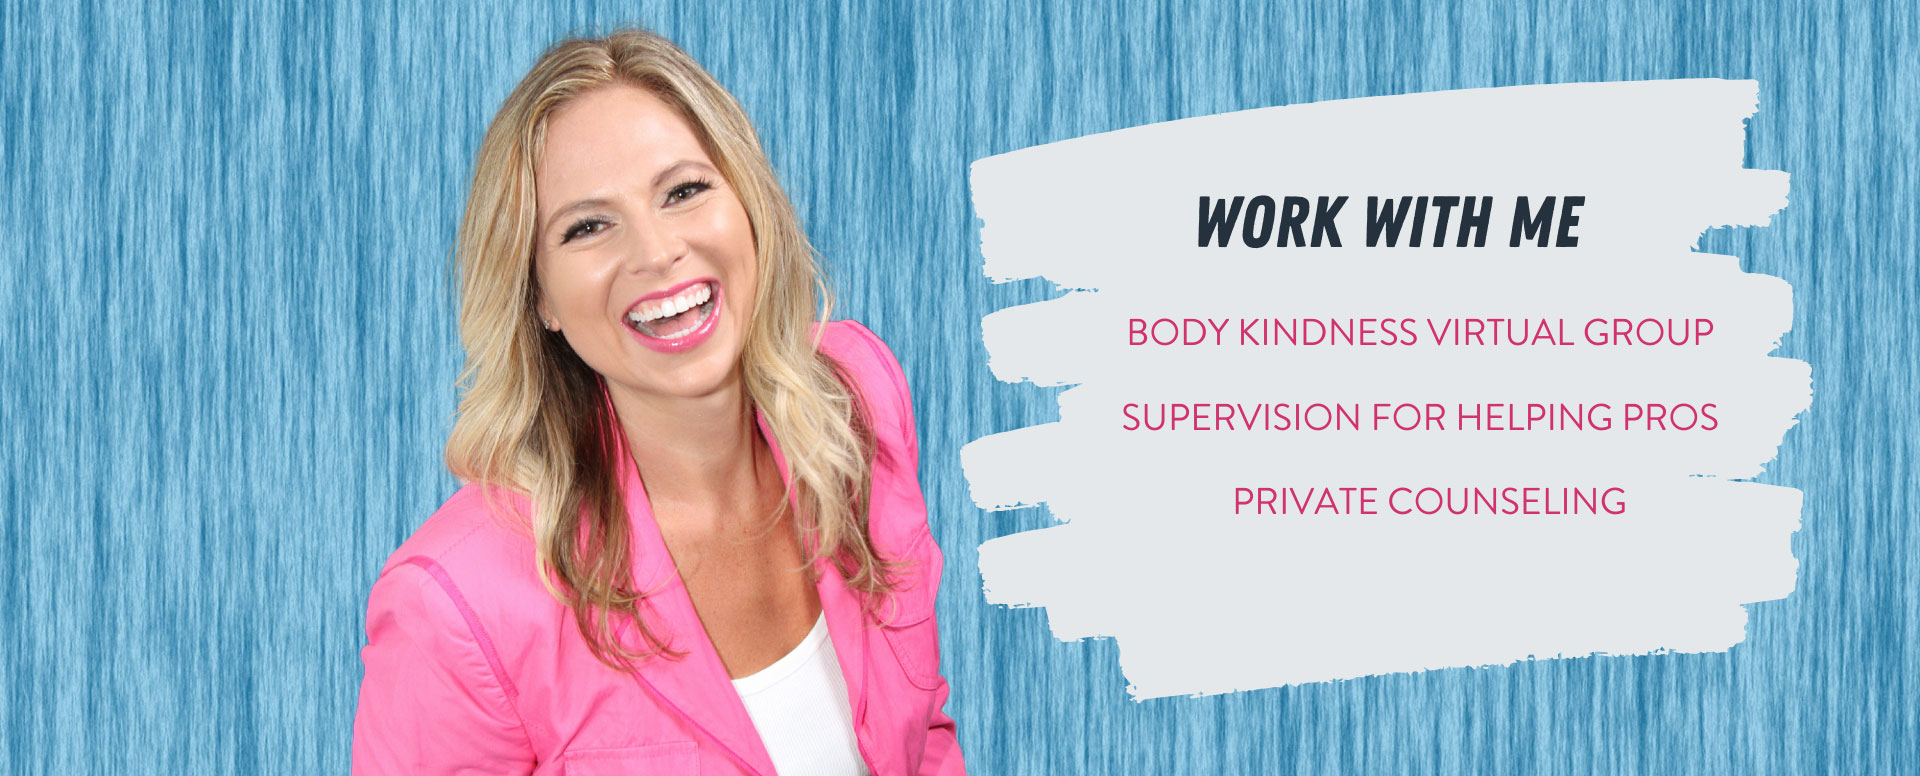 Work with me. Body Kindness virtual group. Supervision for Helping Pros. Private Counseling.